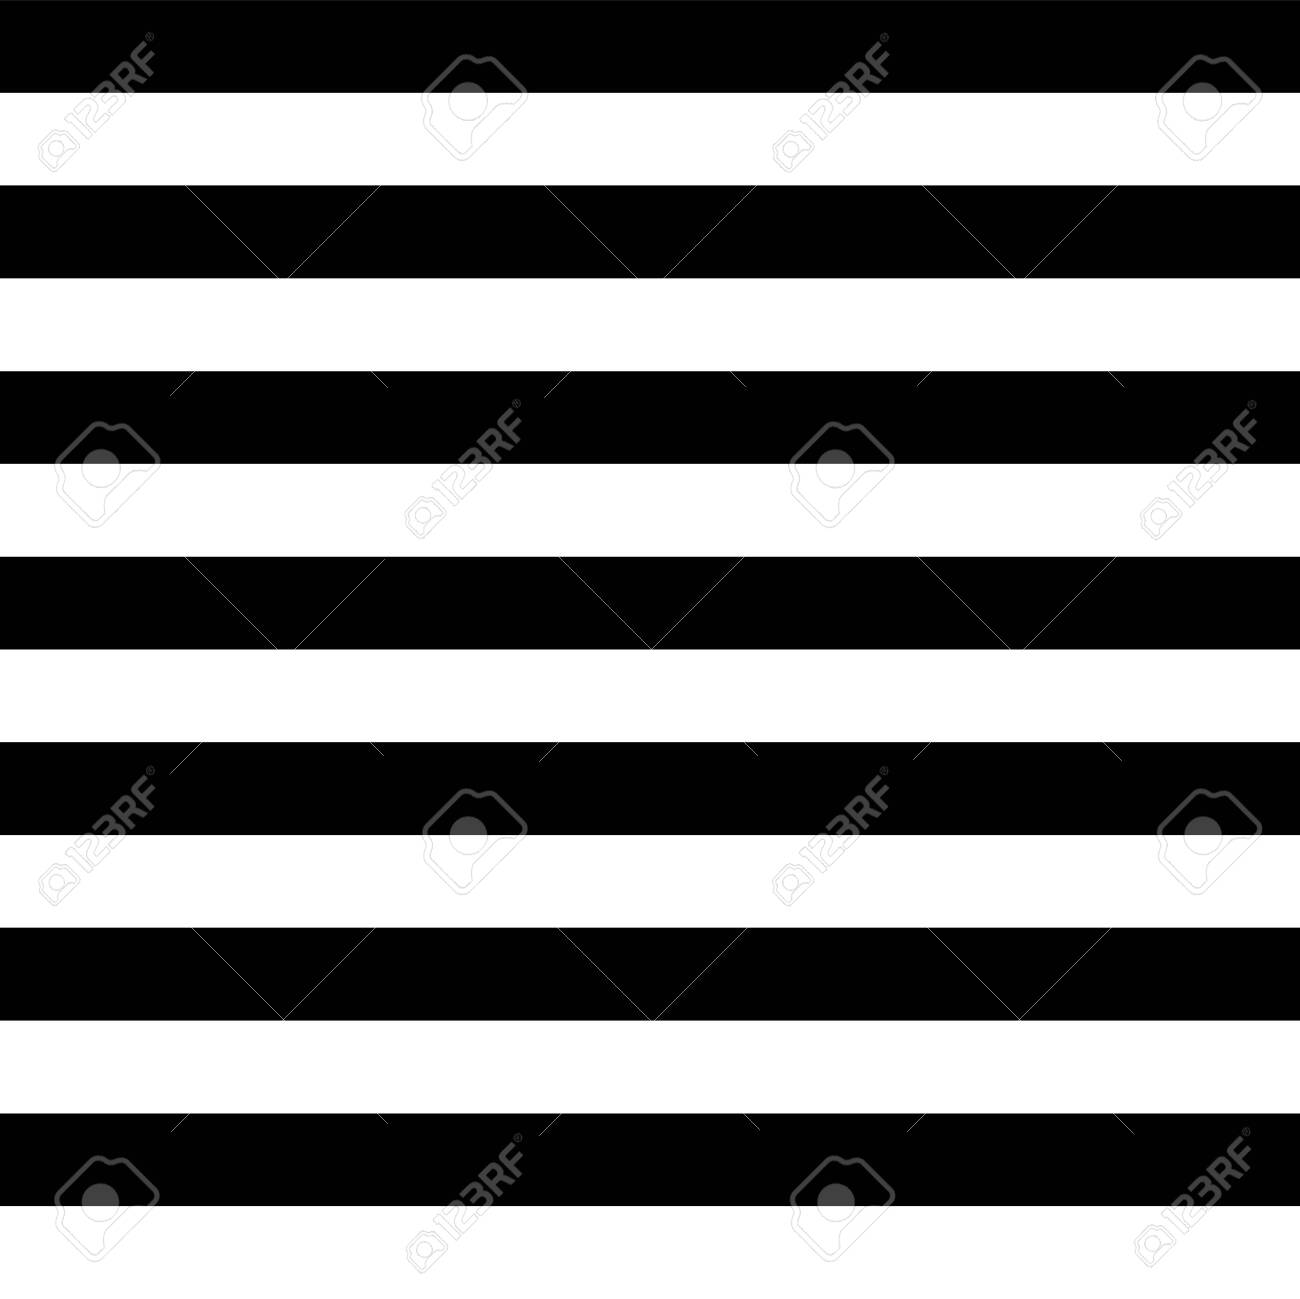 Horizontal Stripes Wallpaper Wrapper For Packaging Design Royalty Free Cliparts Vectors And Stock Illustration Image 122206612